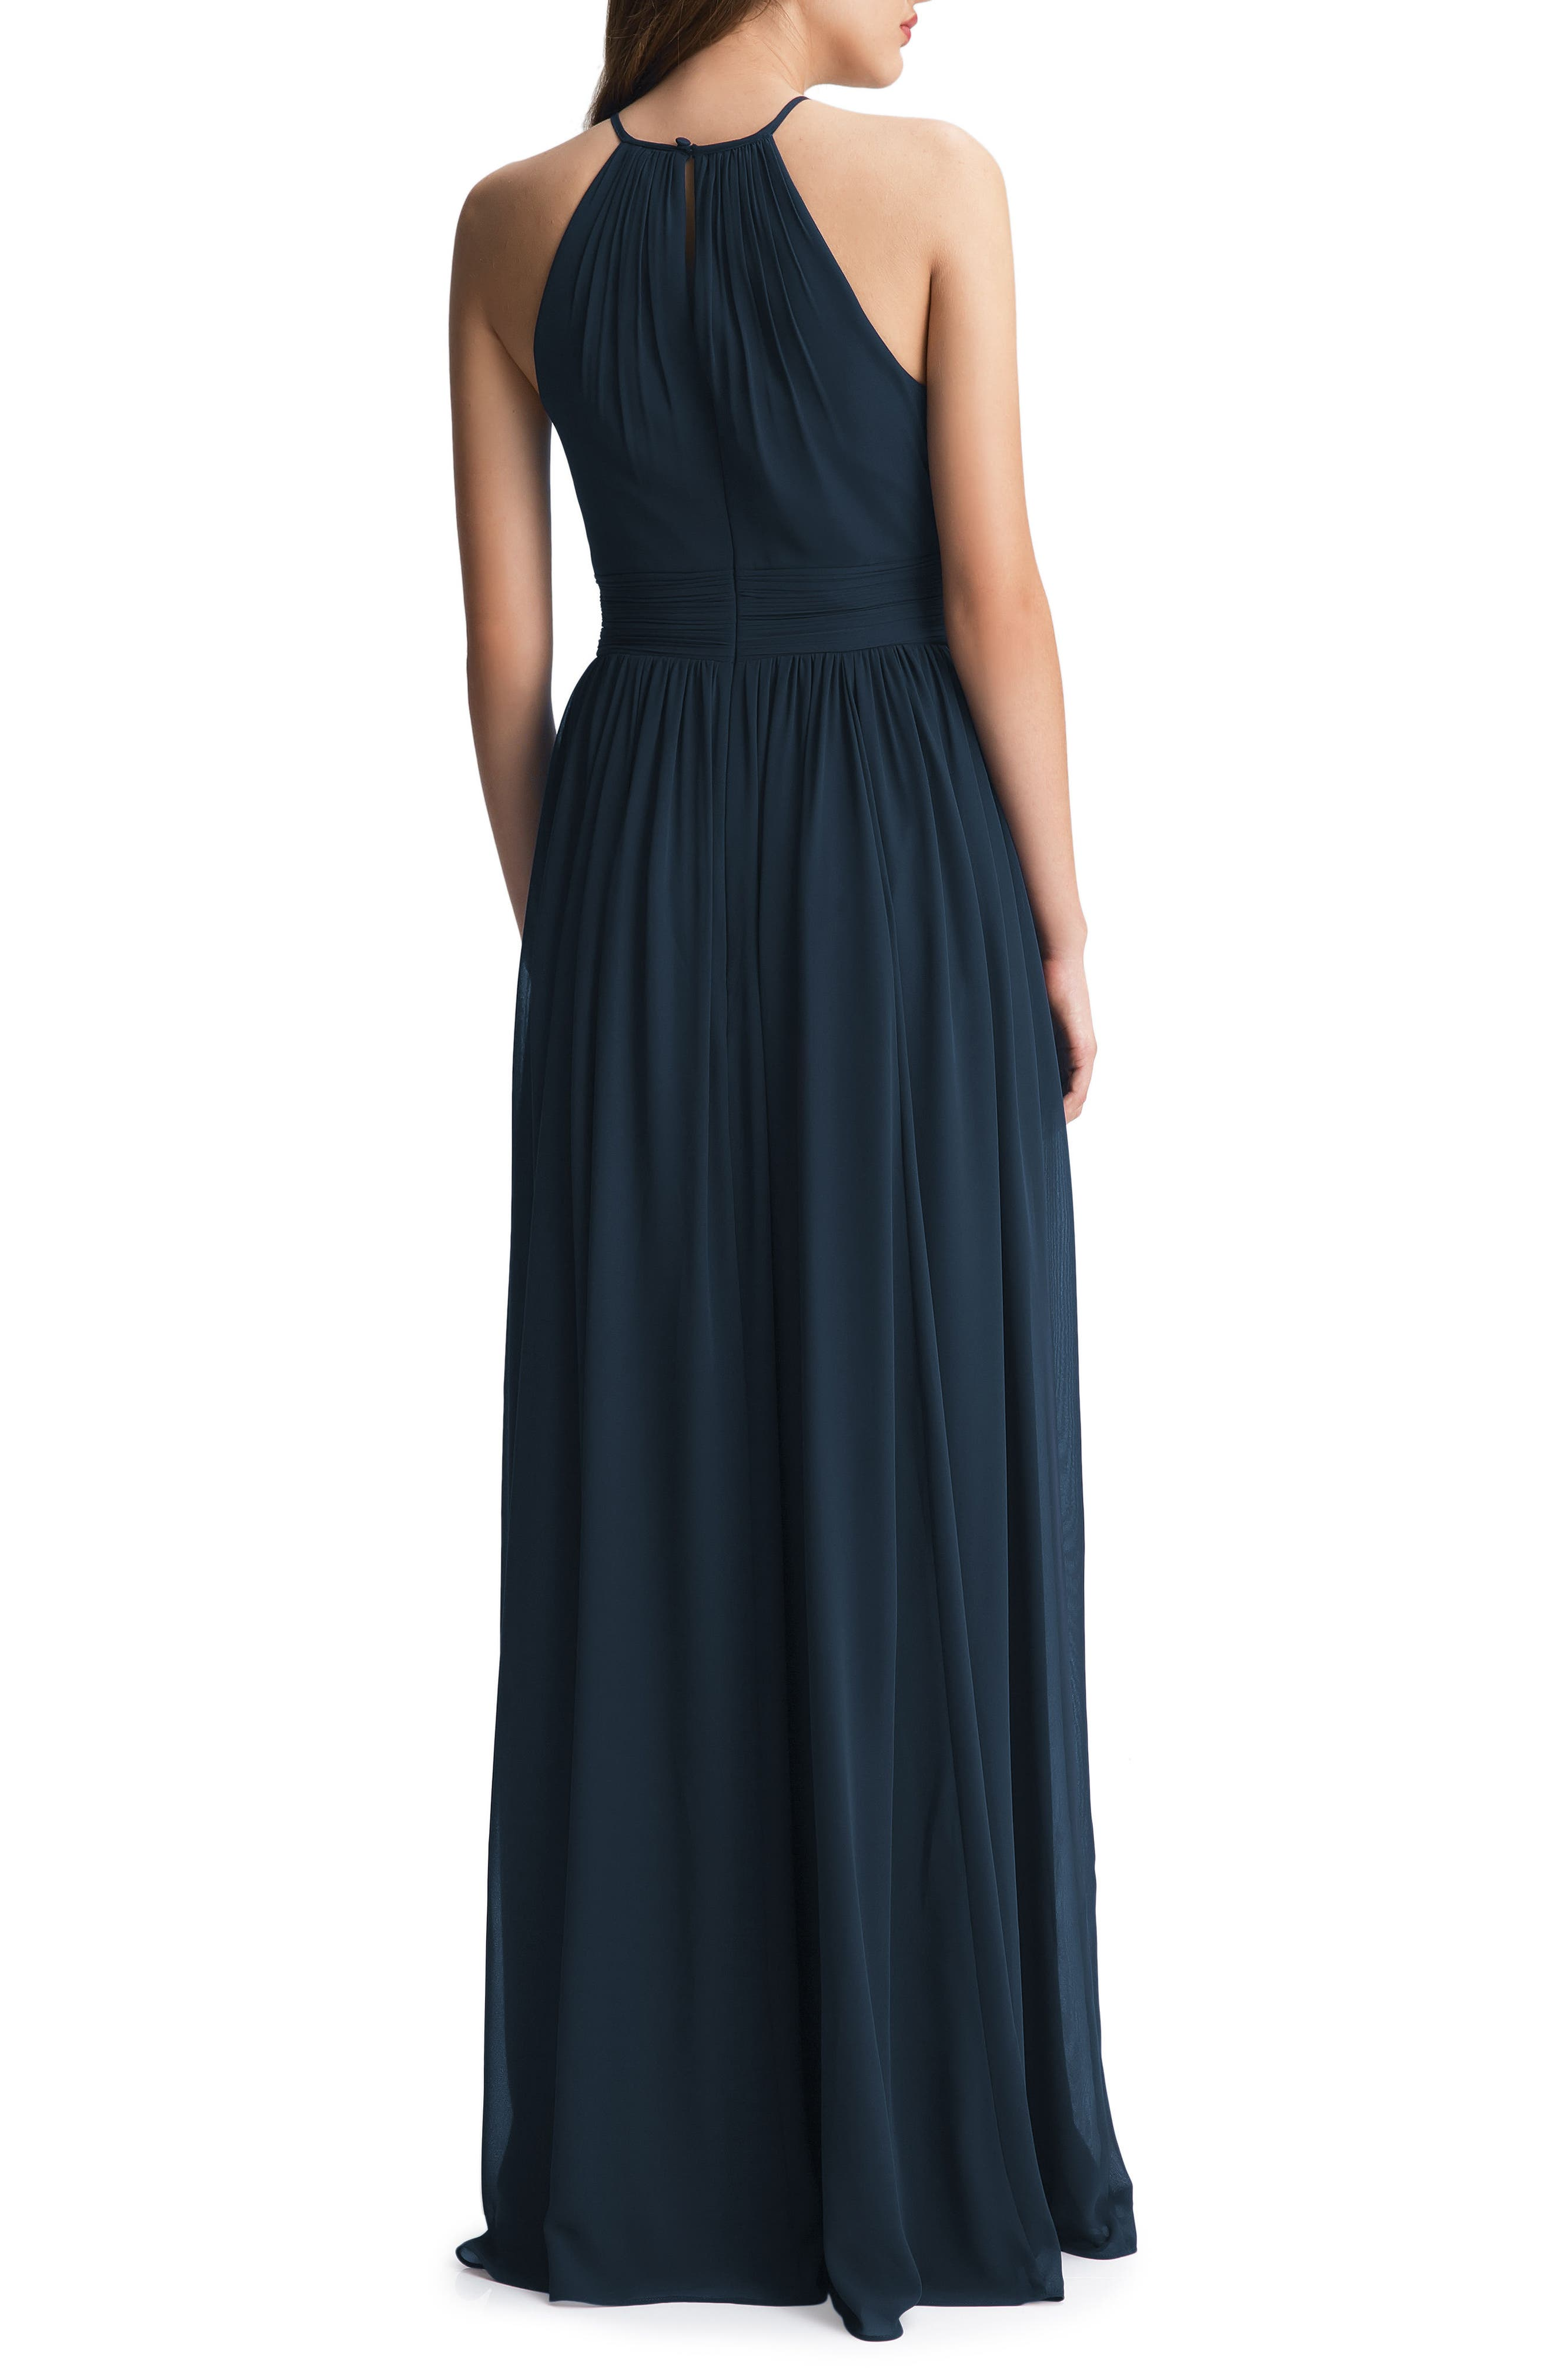 #LEVKOFF, Keyhole Chiffon A-Line Gown, Alternate thumbnail 2, color, NAVY